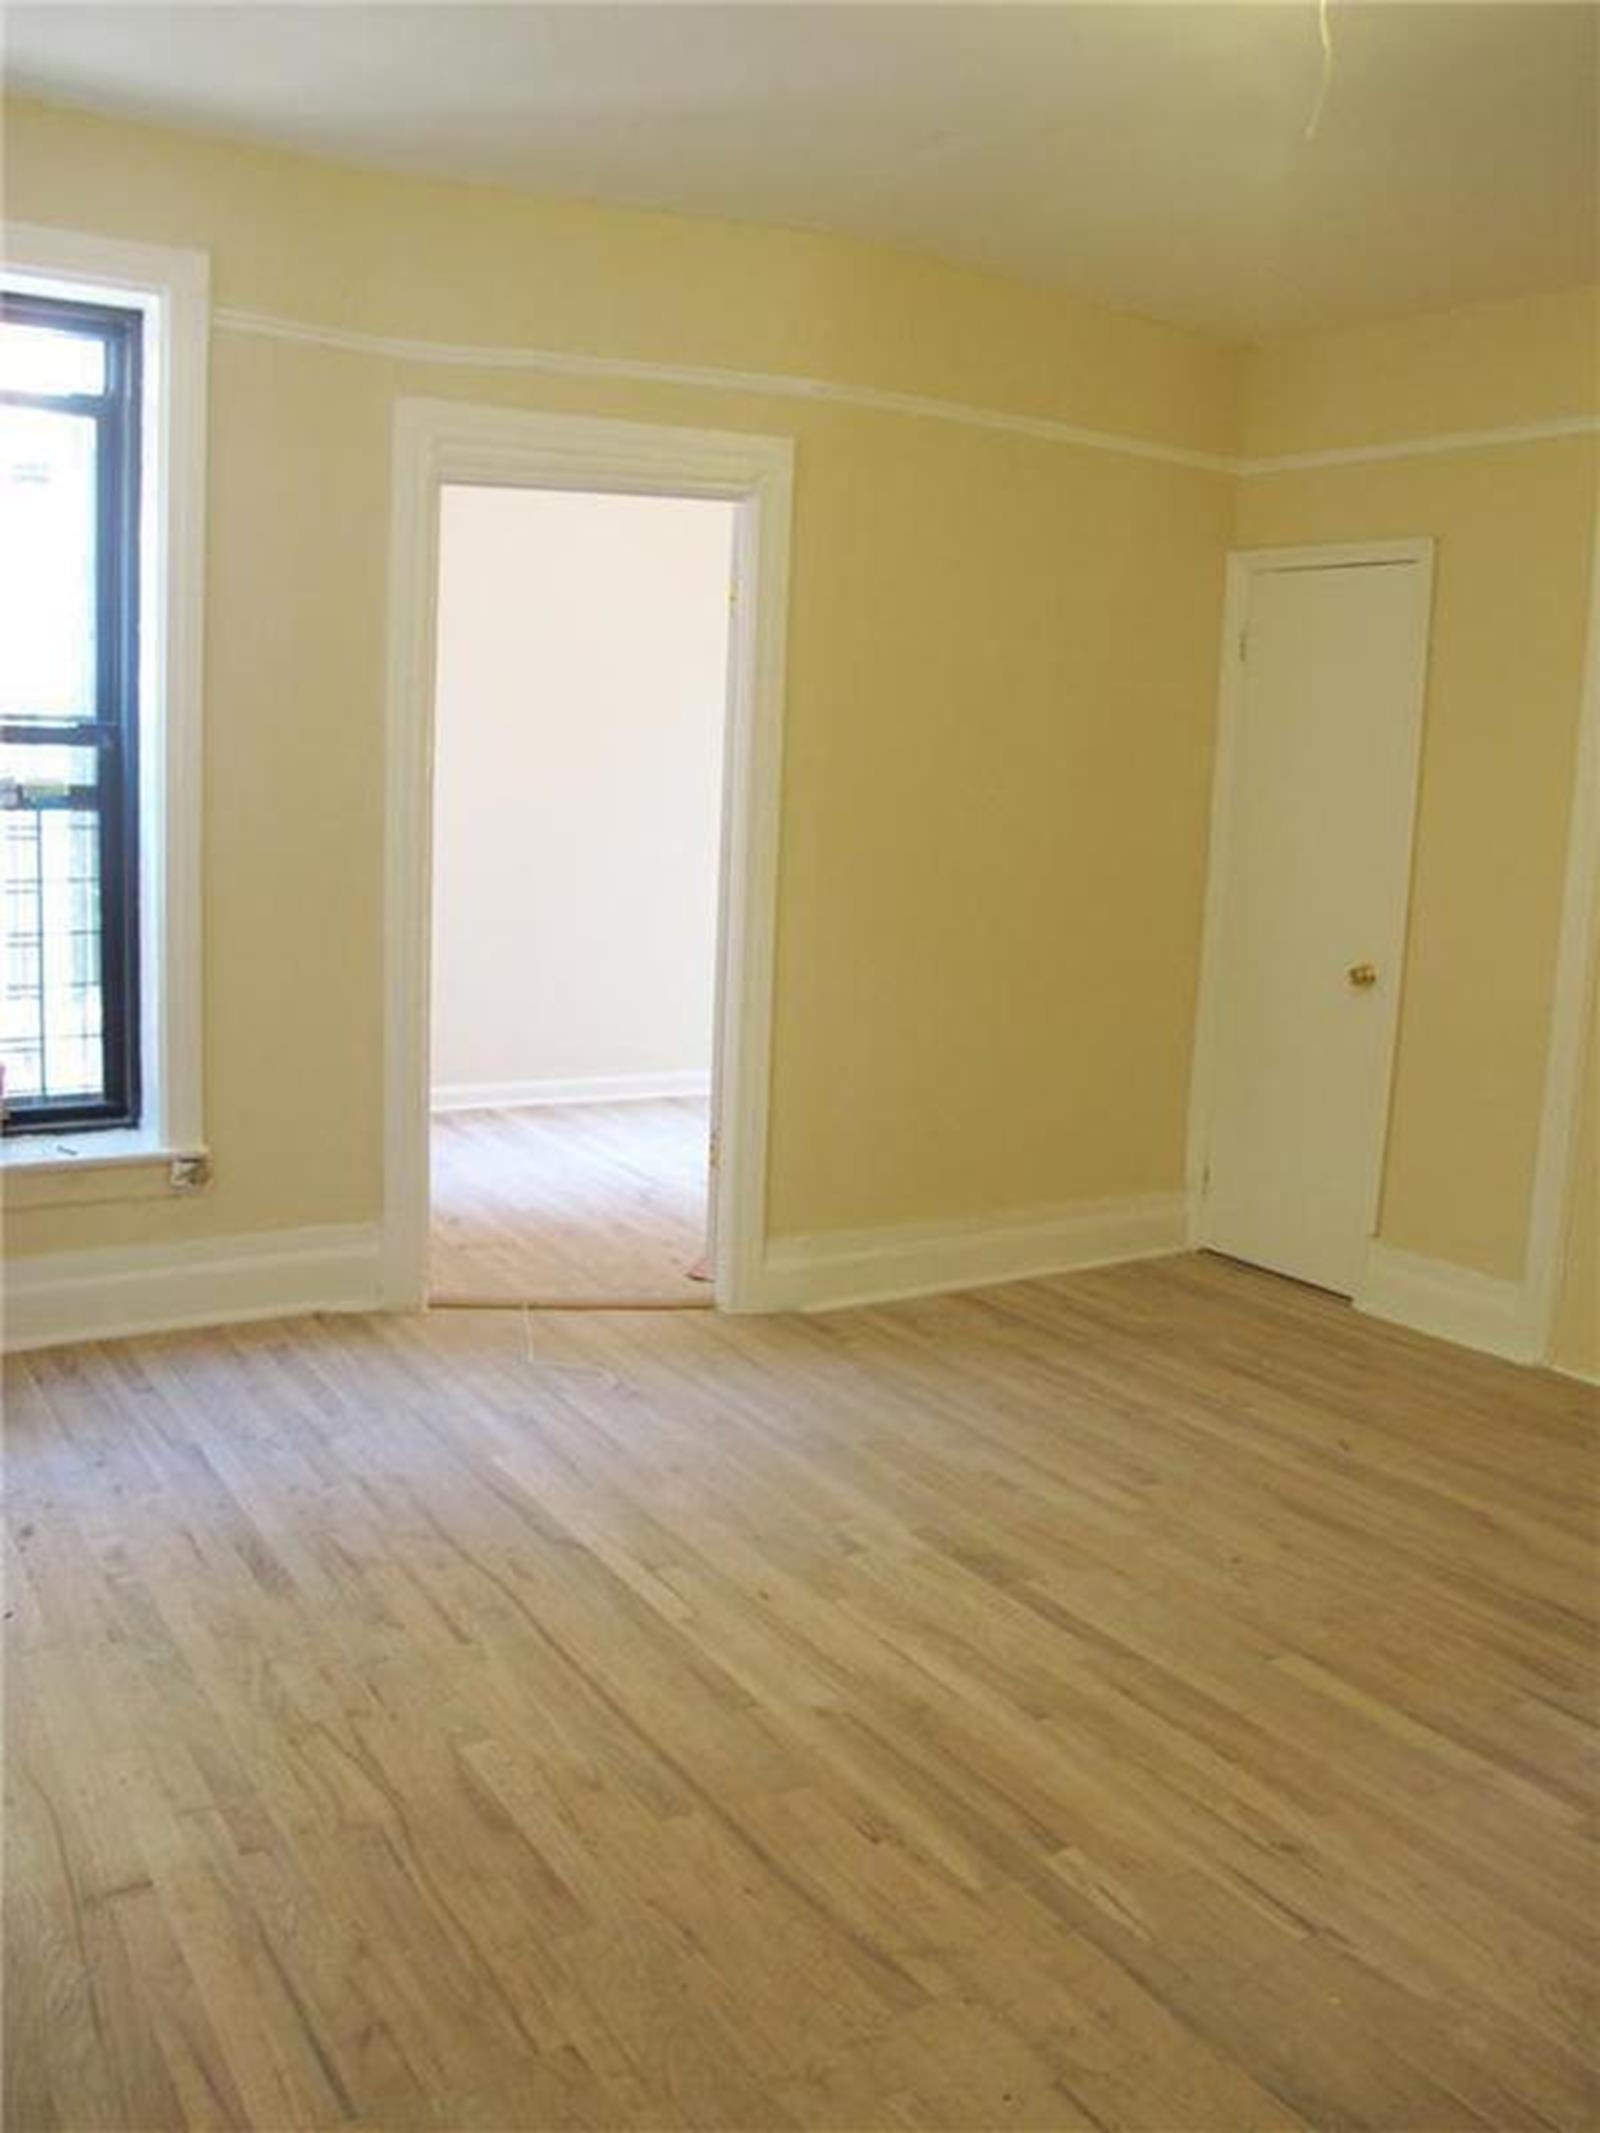 Single Family Home for Rent at Sunset Park Sunset Park Brooklyn, New York 11220 United States